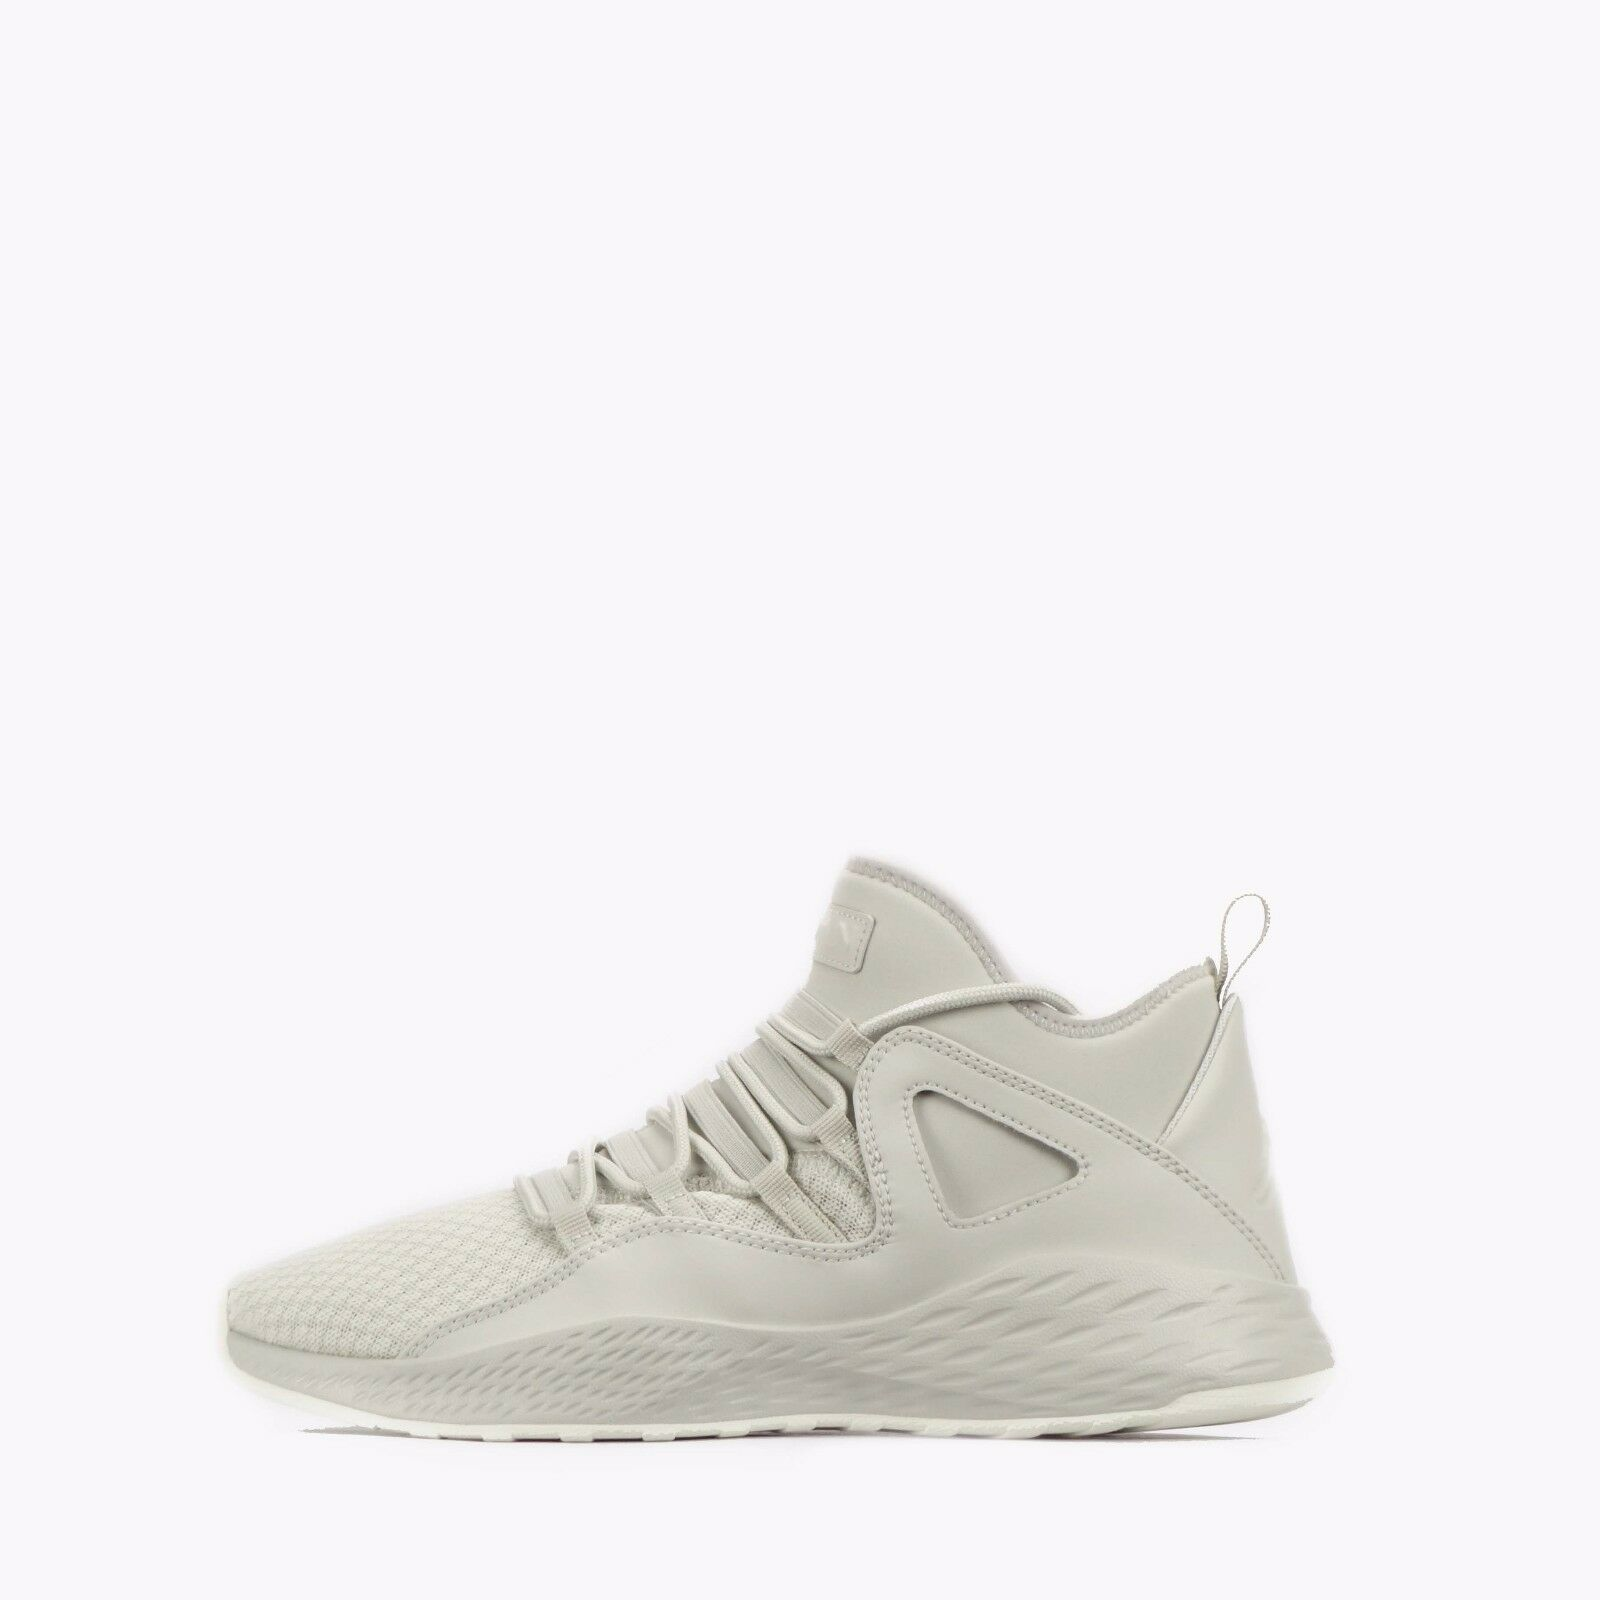 Nike Jordan Formula 23 Men's Trainers Light Bone/Sail RRP .99